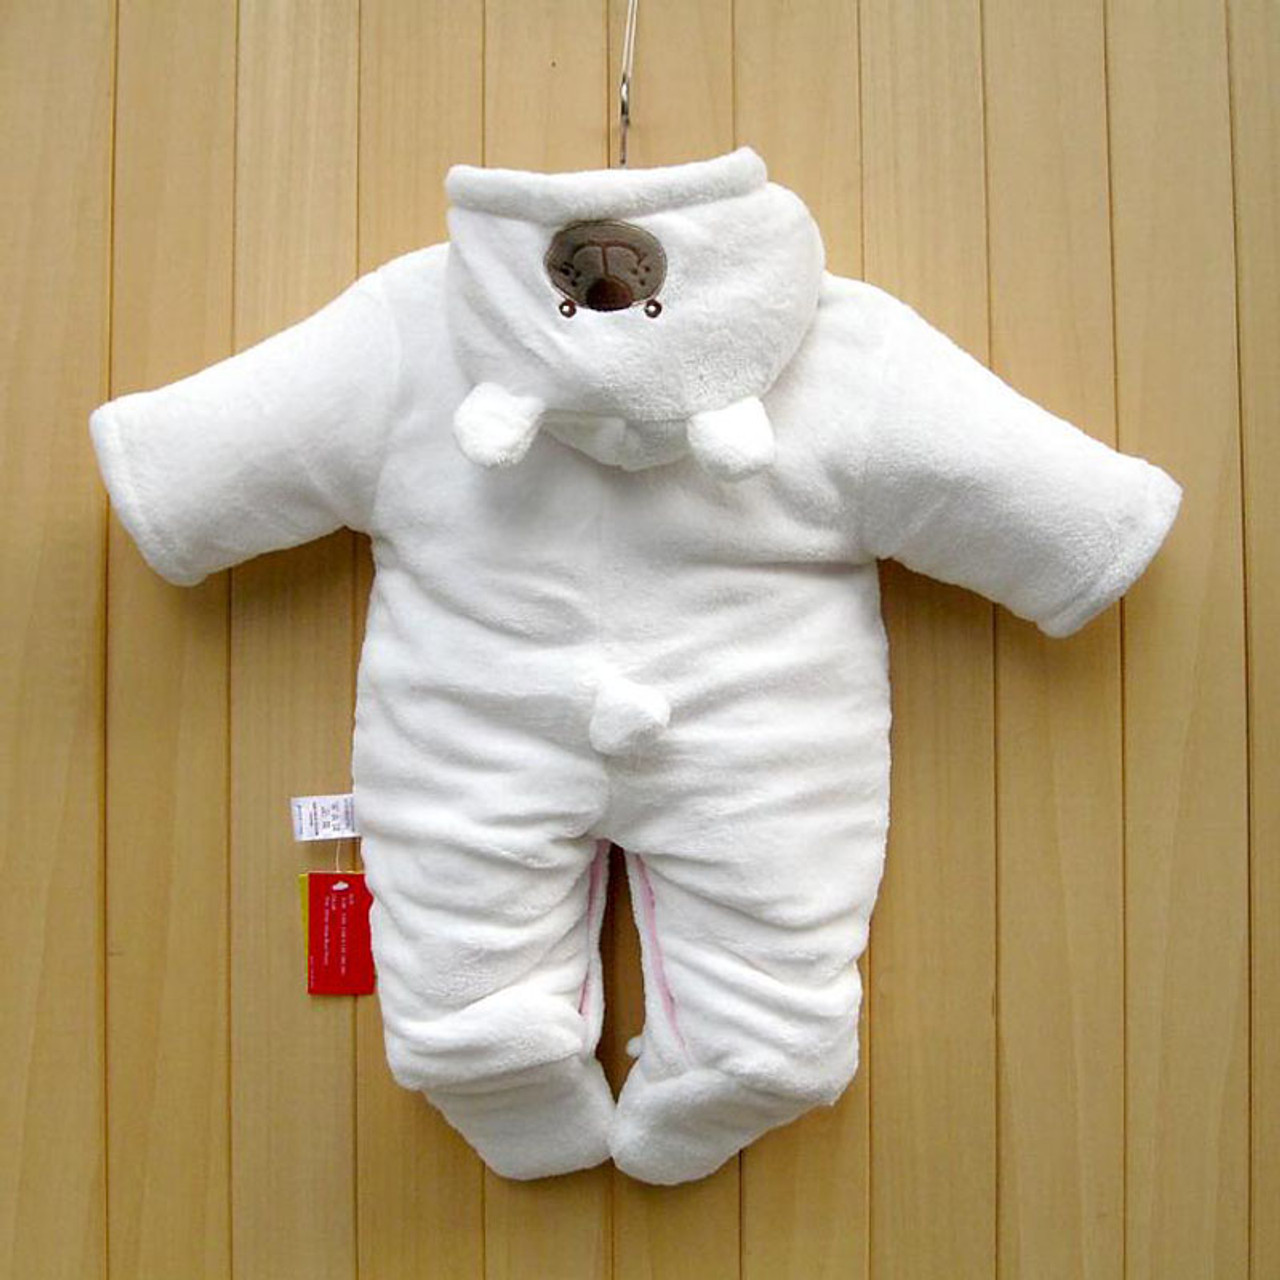 48bdea63cc86a Newborn Baby Rompers Cartoon Hooded Winter Baby Clothing Thick Cotton Baby  Girls Outfits Baby Boys Jumpsuit Infant Clothes